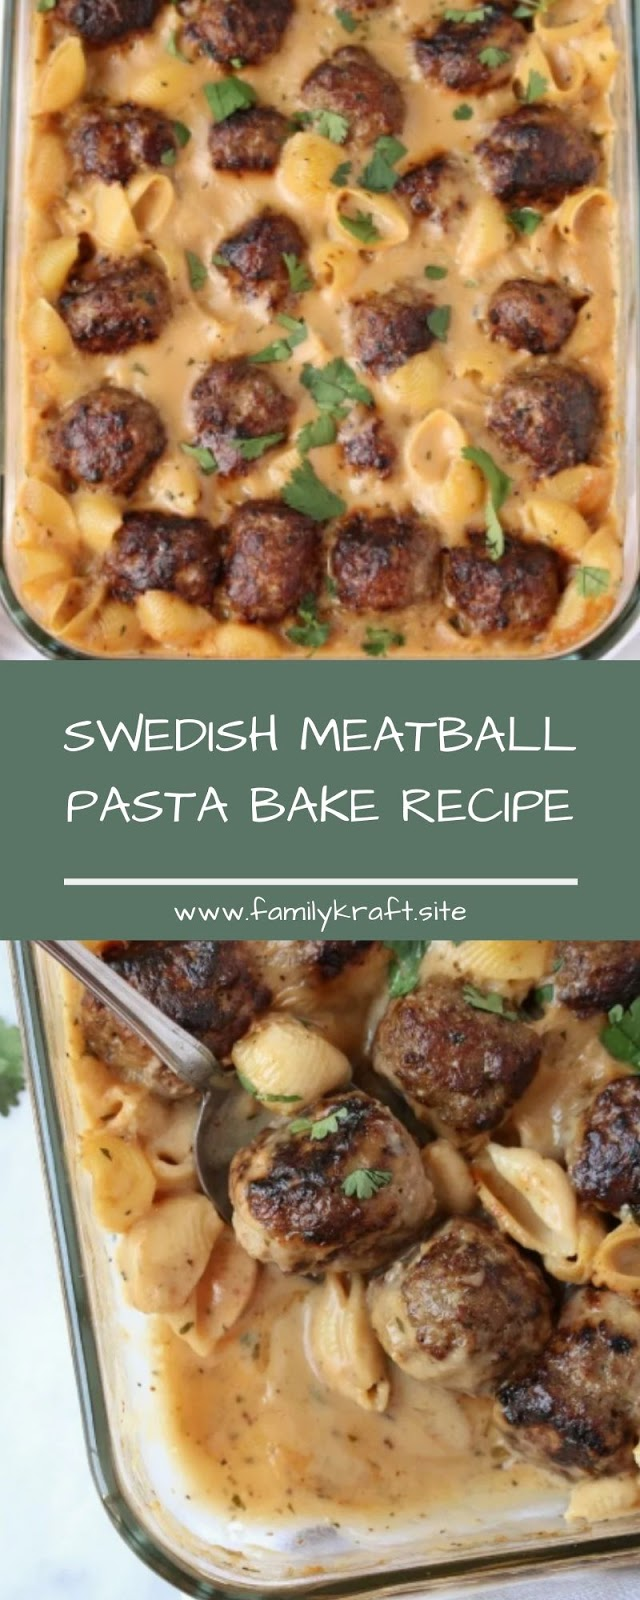 SWEDISH MEATBALL PASTA BAKE RECIPE